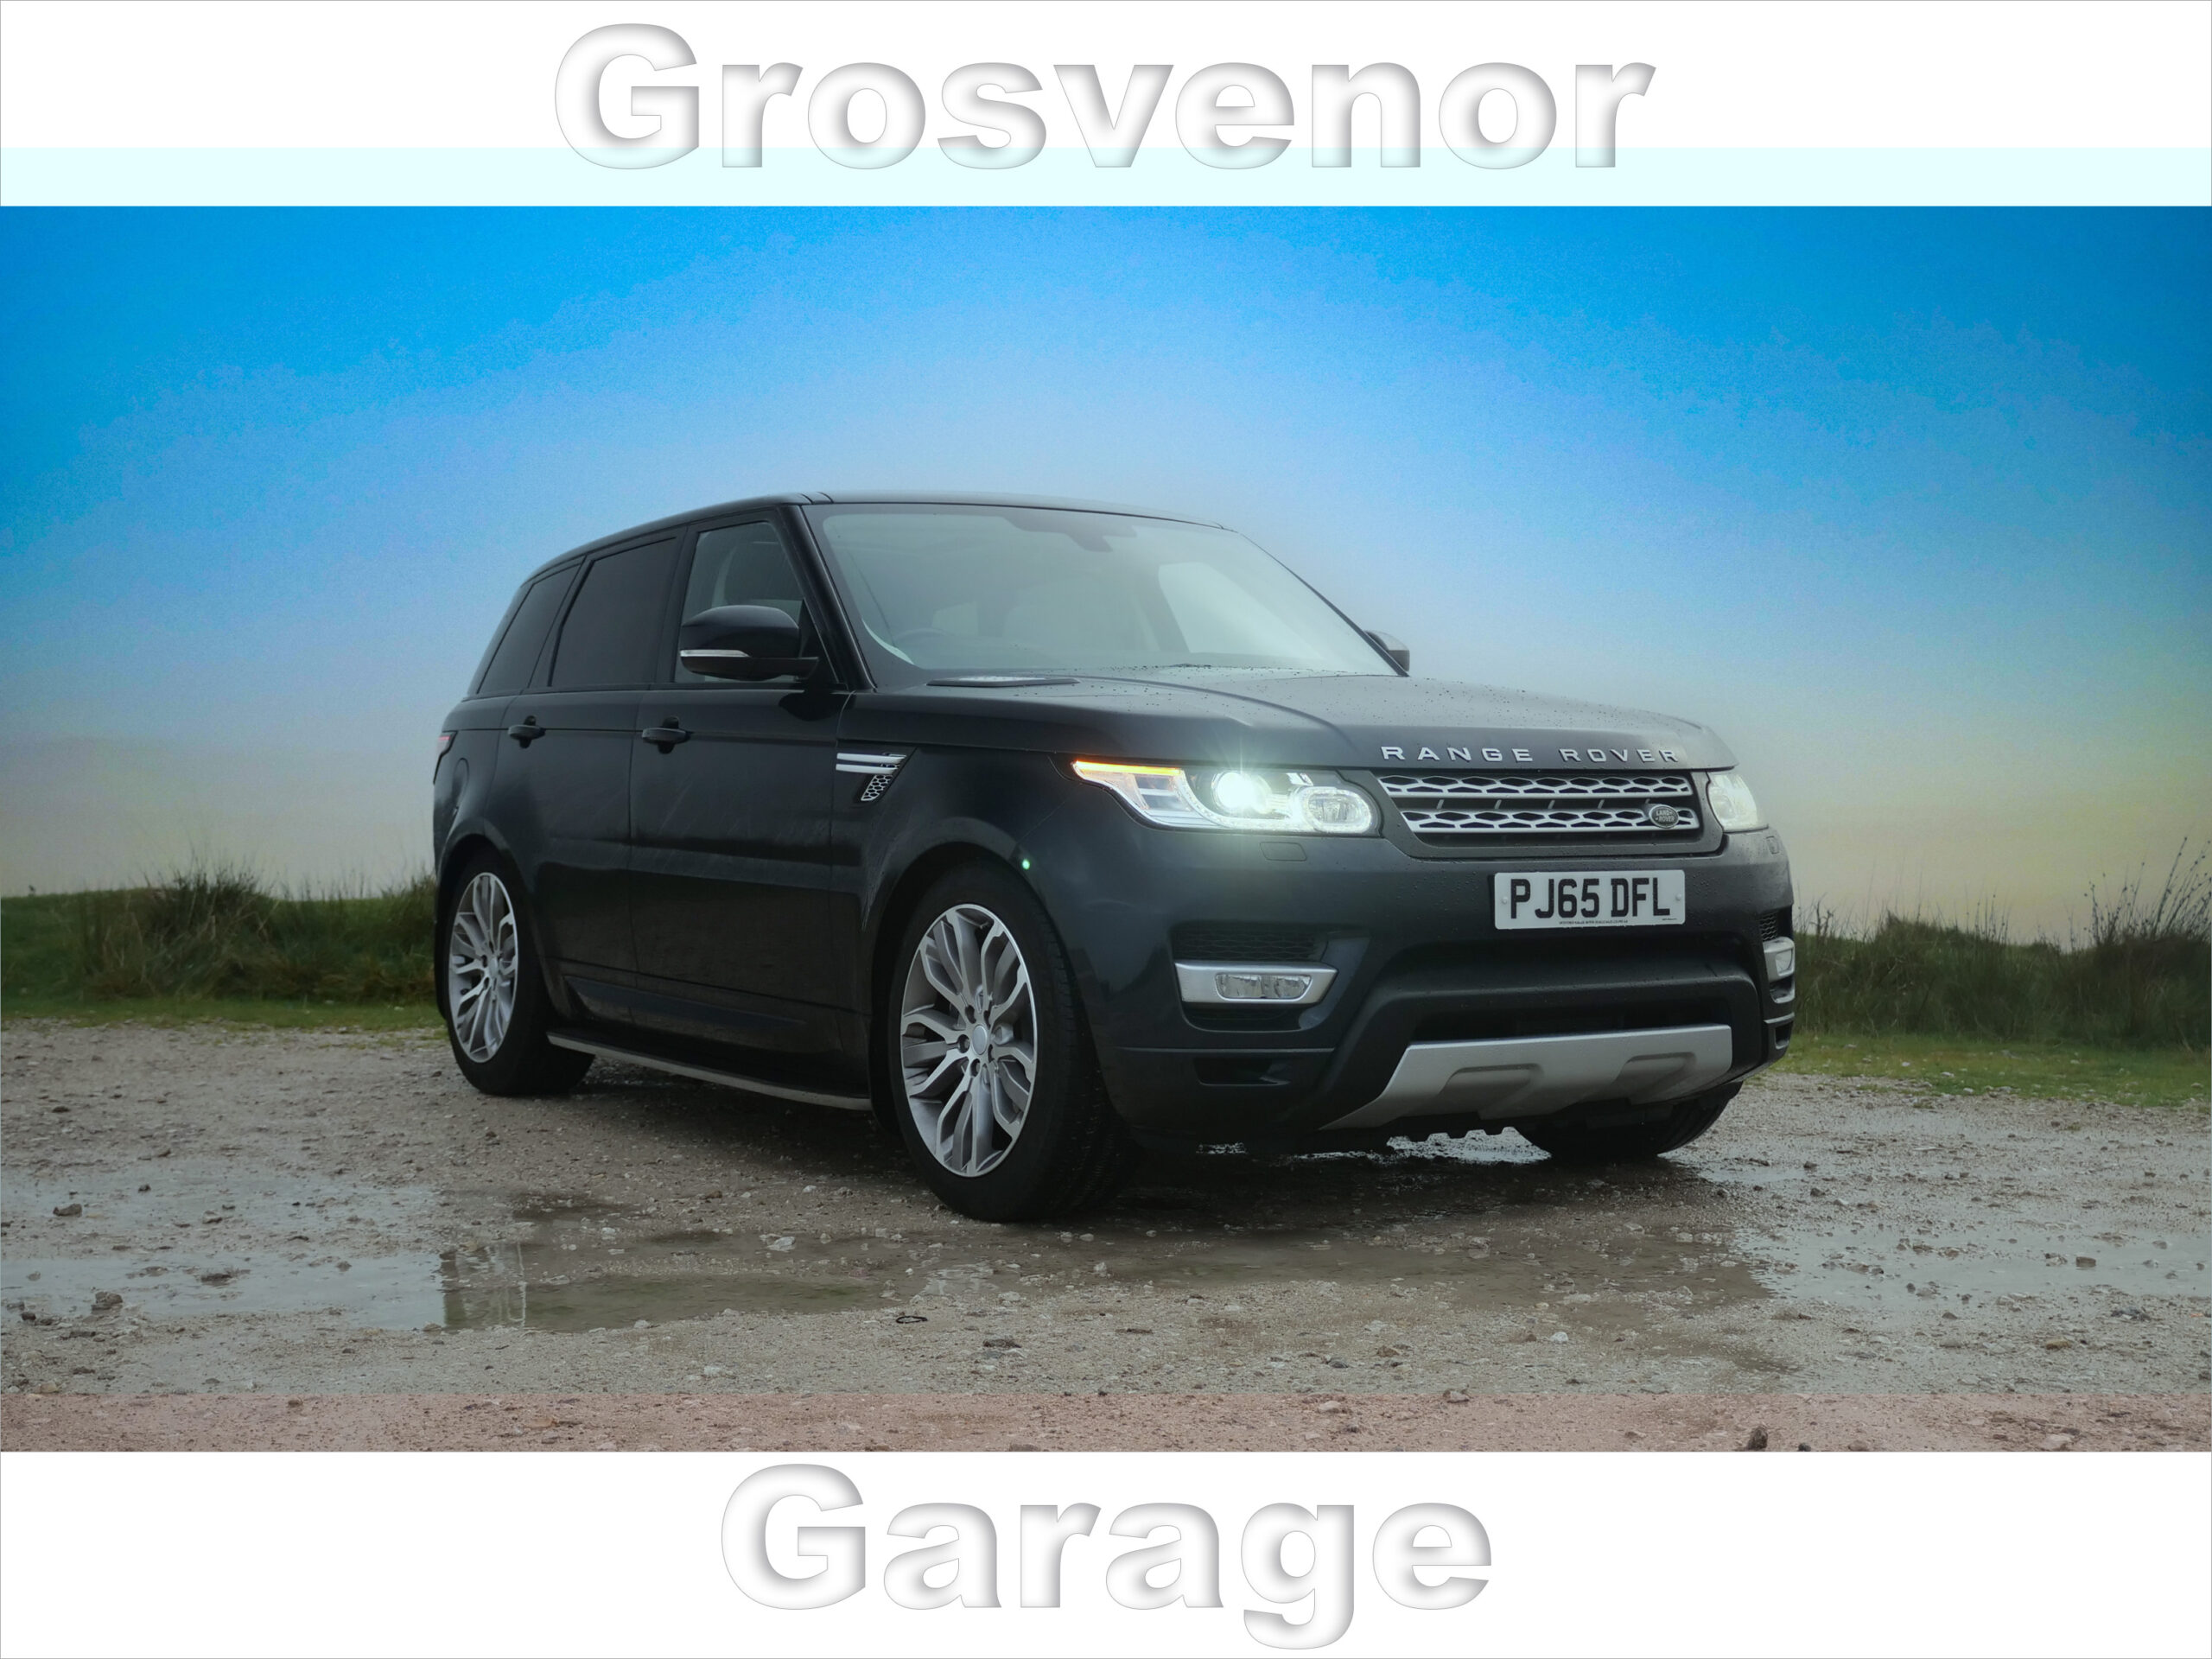 2015 (65) LAND ROVER RANGE ROVER SPORT 3.0 SDV6 HSE 5DR AUTOMATIC